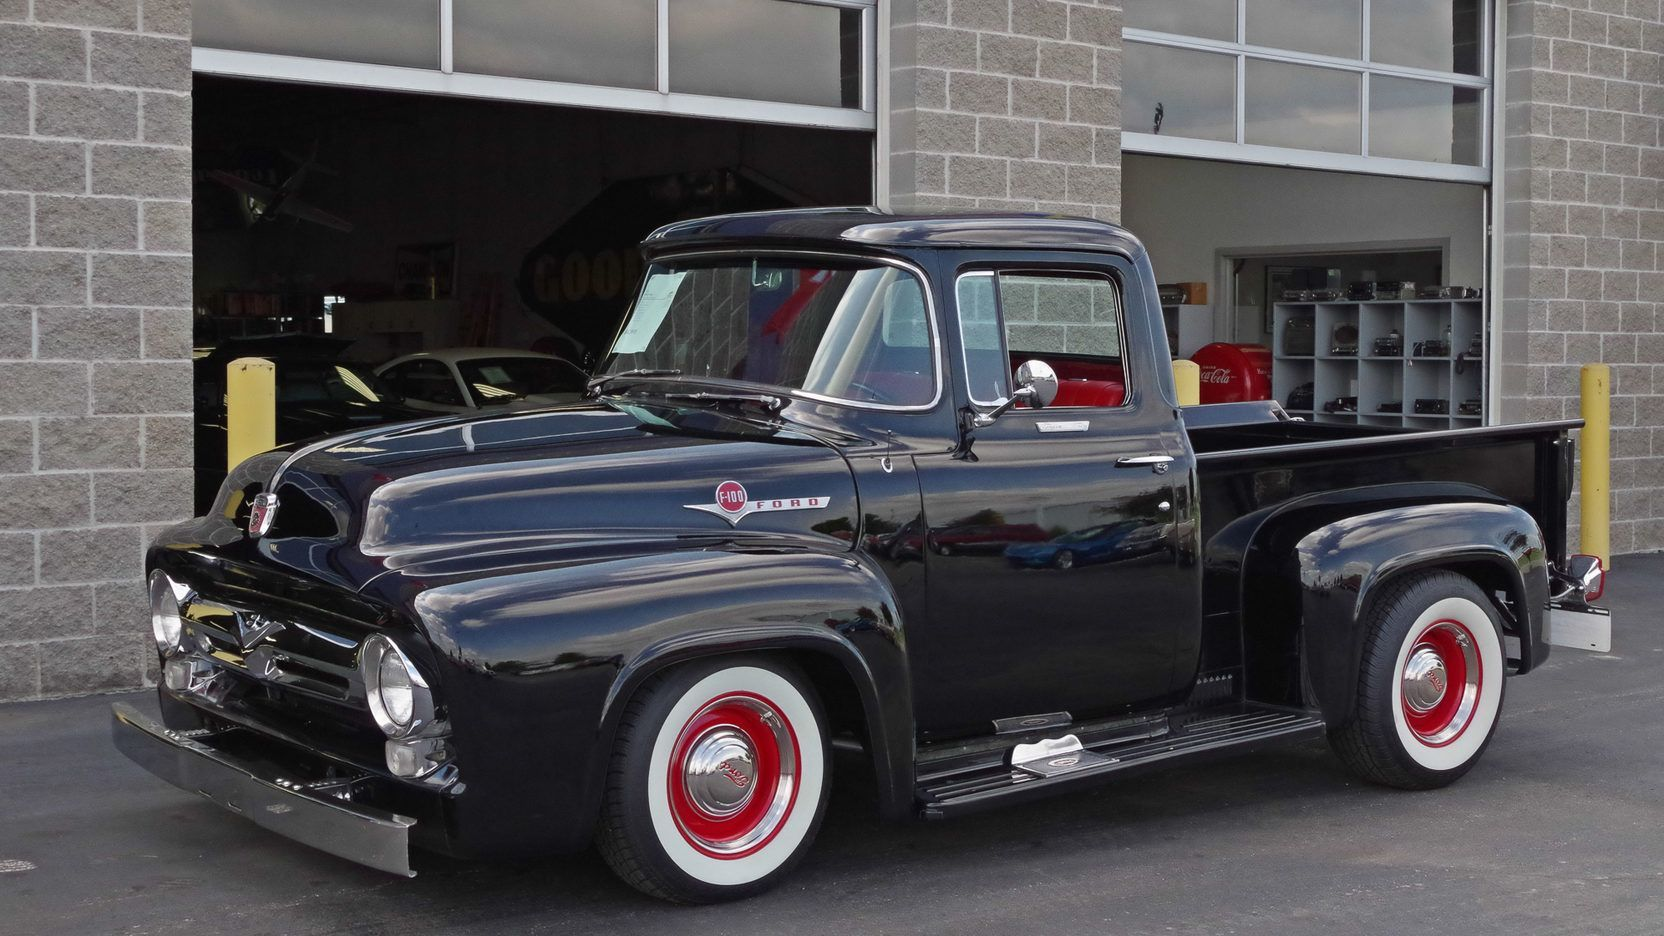 Auction Lot S49 Dallas Tx 2013 California Title All Ford Drivetrain 302 Ci V 8 With Automatic Transmission Flowmast Trucks 1956 Ford F100 1956 Ford Truck